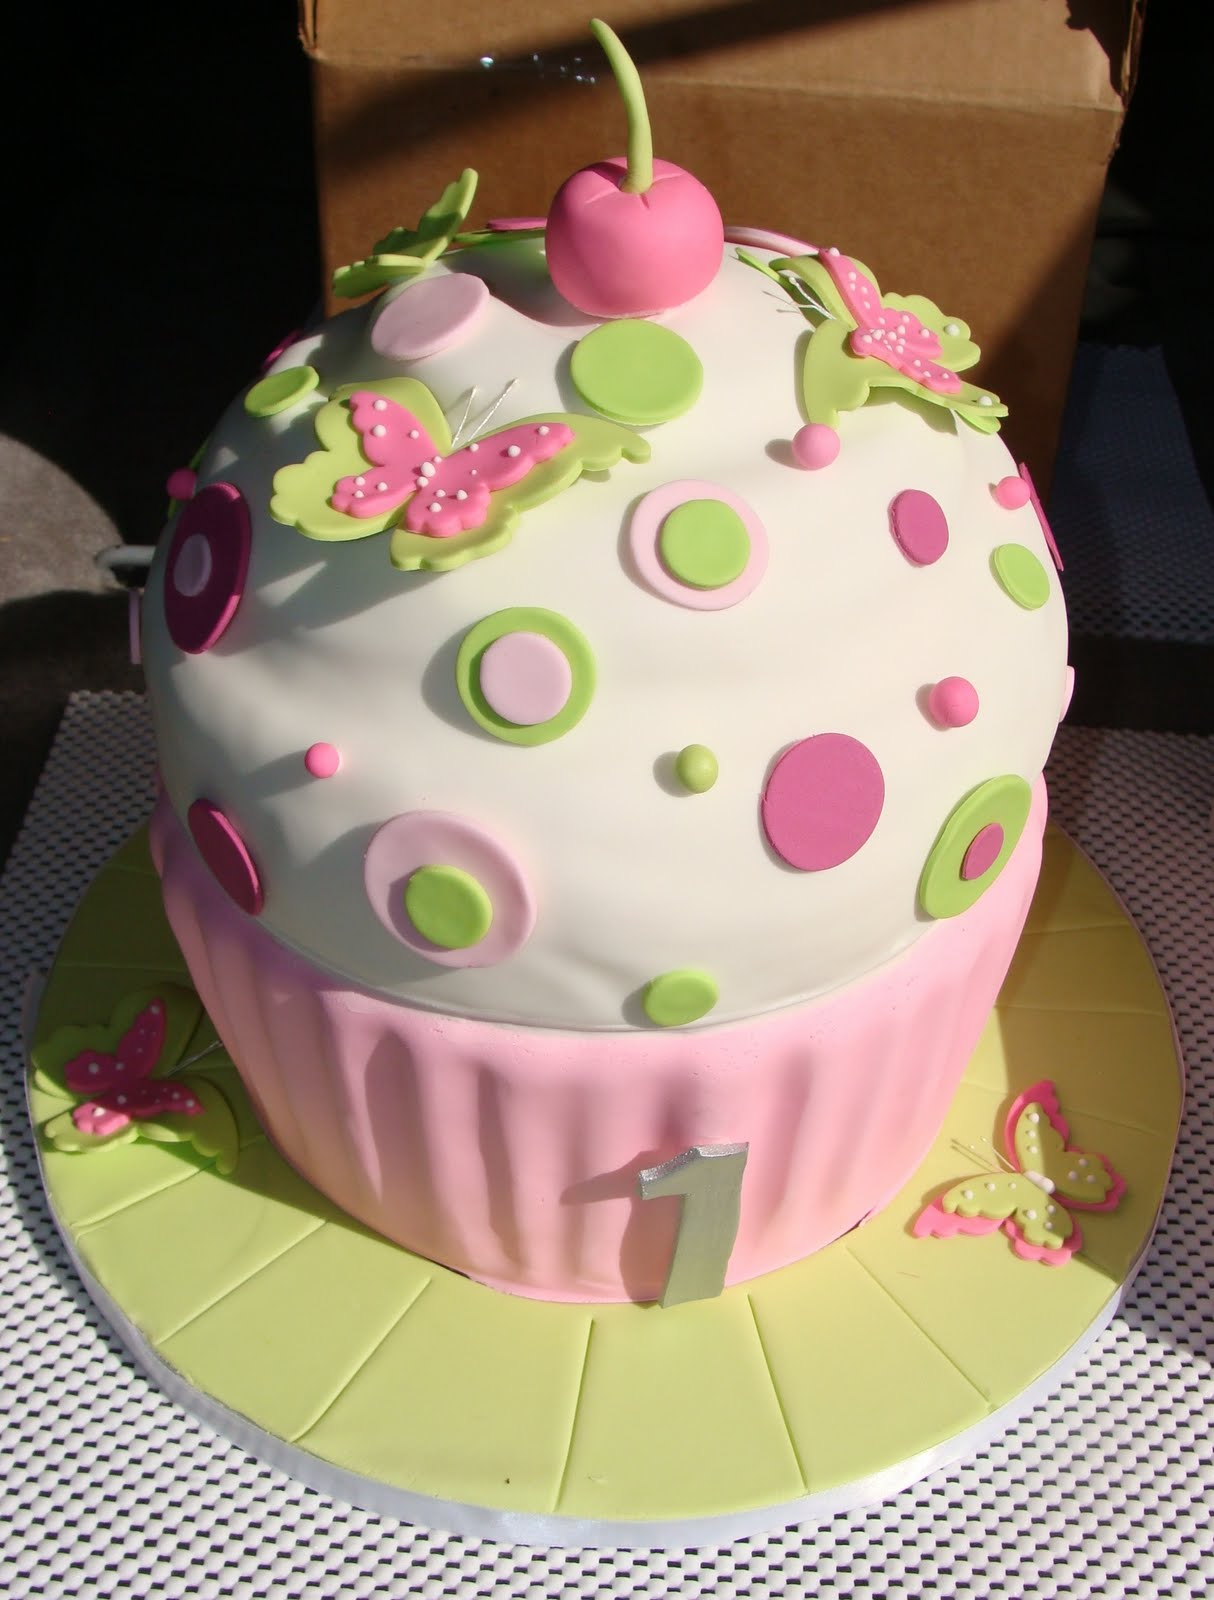 cupcake birthday cake Photo